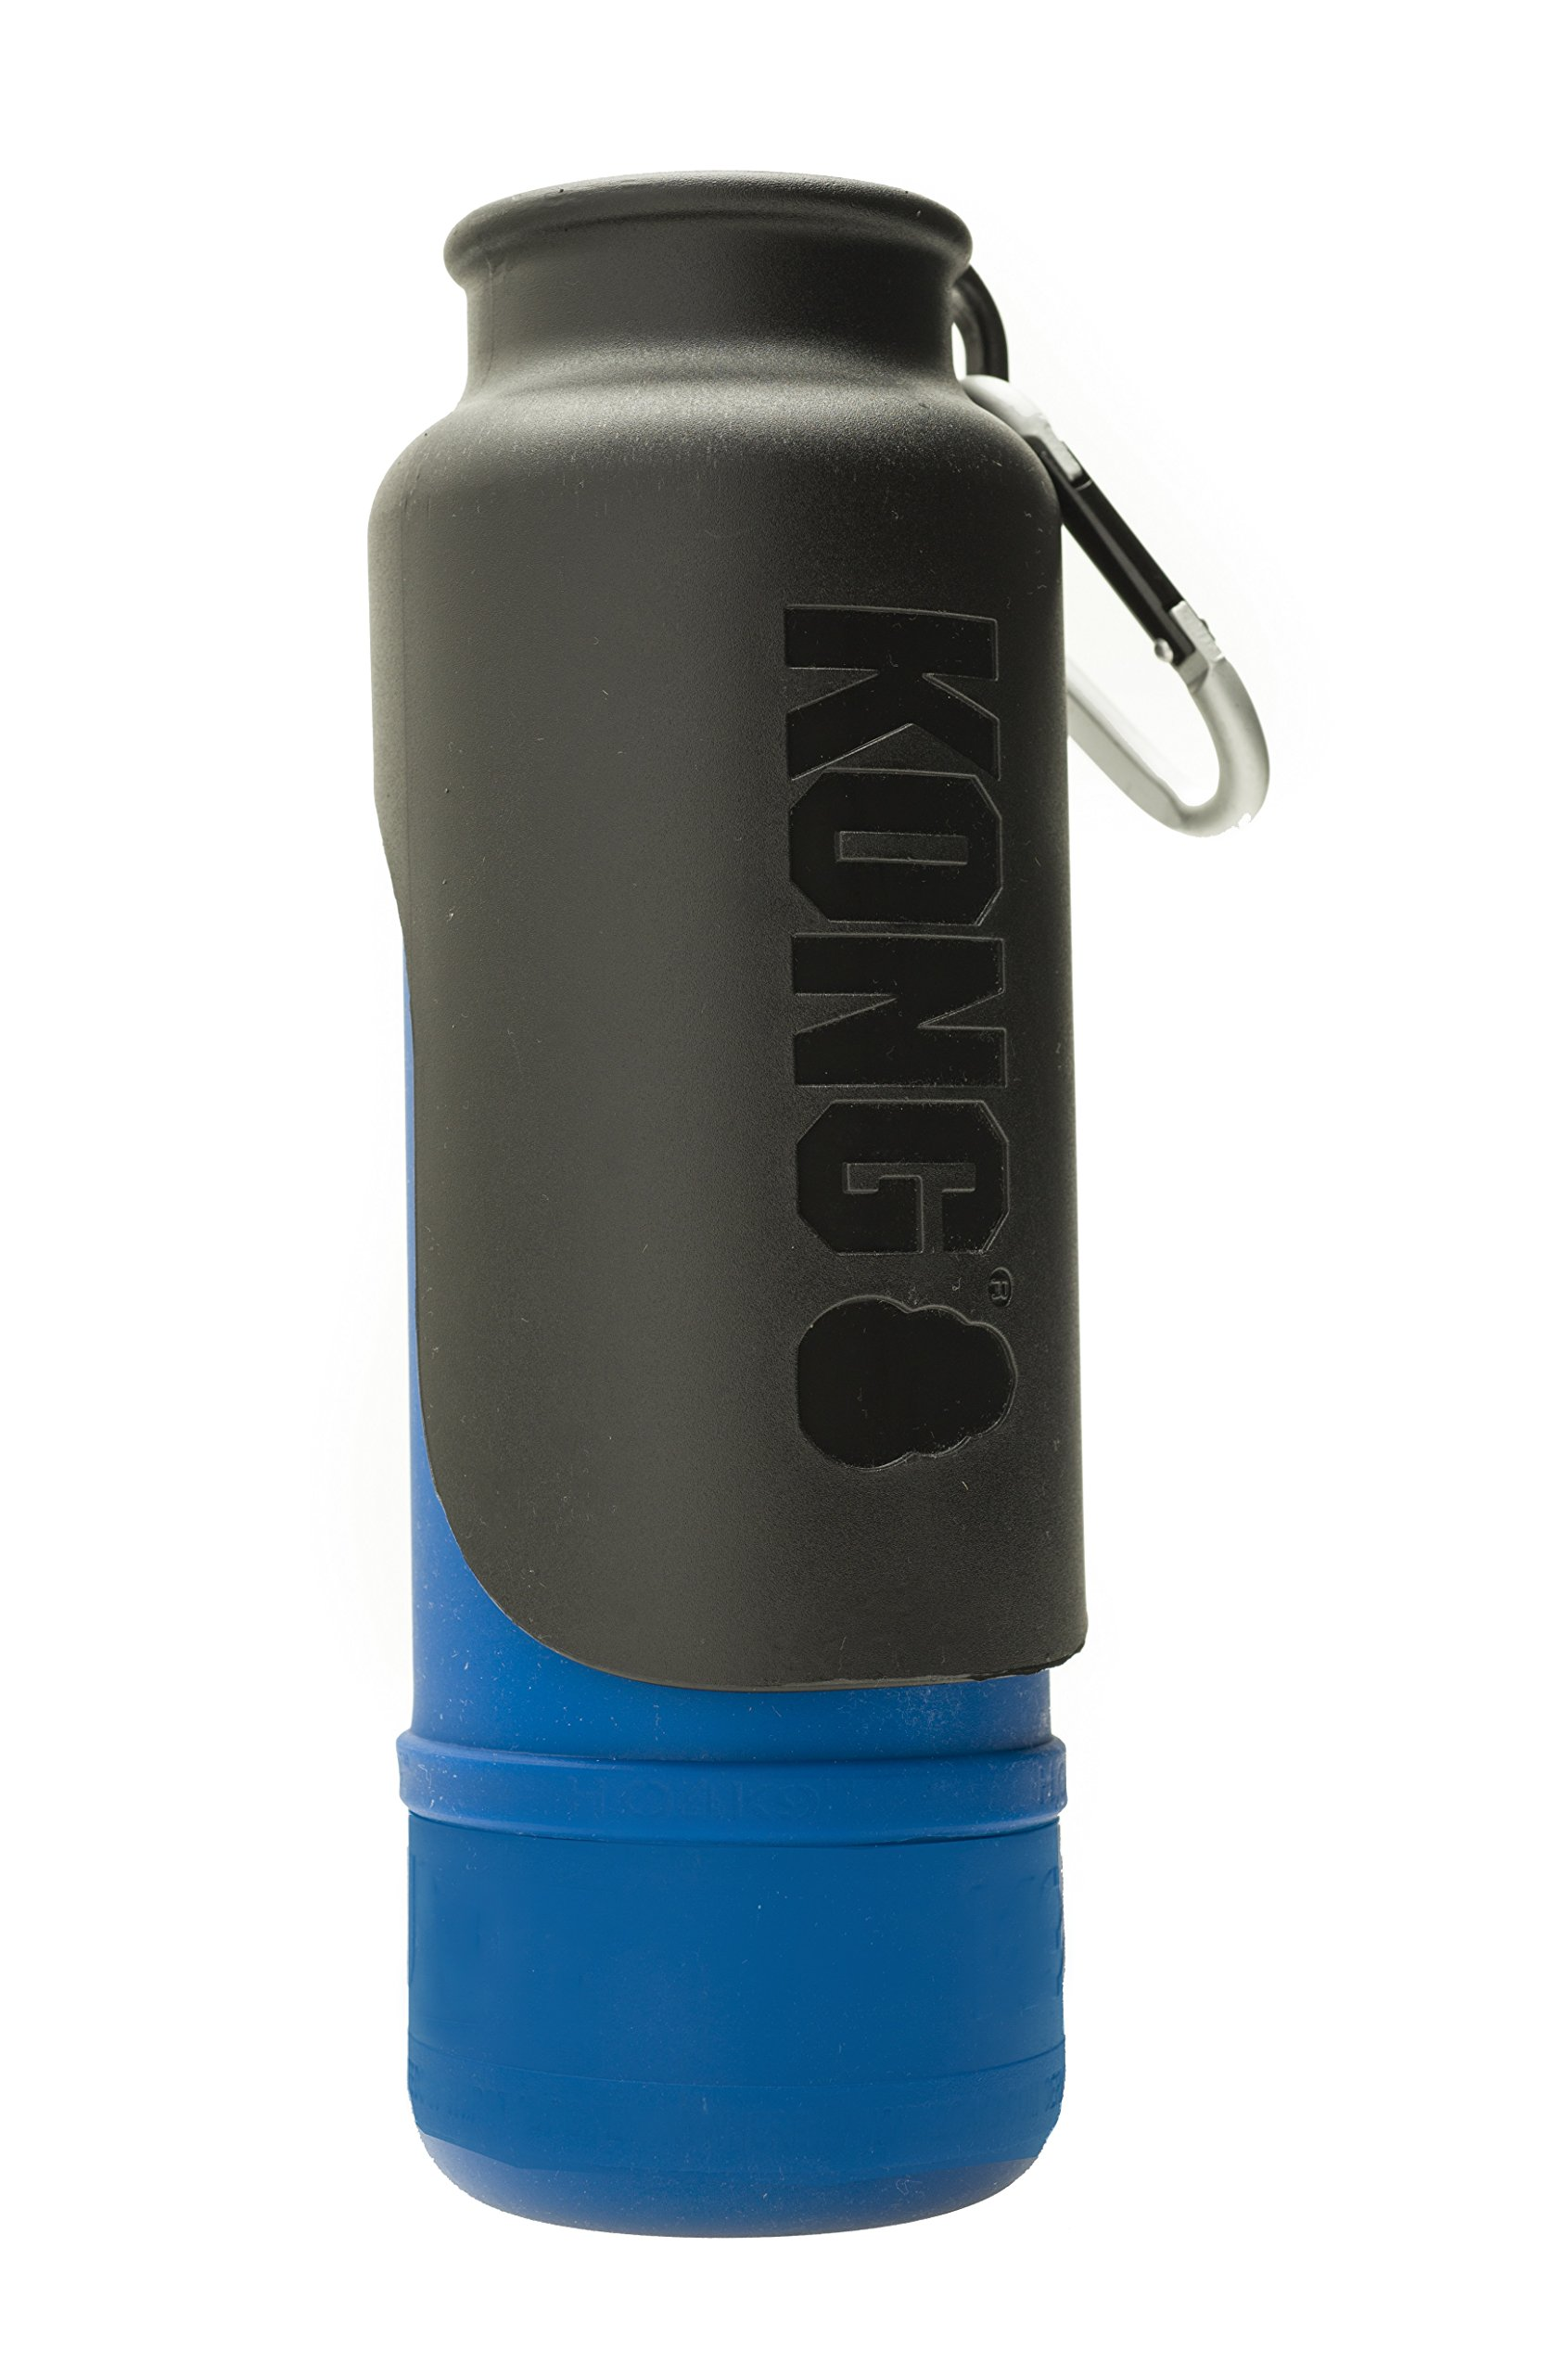 KONG H2O KGK9BLU Stainless Steel Water Bottle 700ml, One Size by KONG